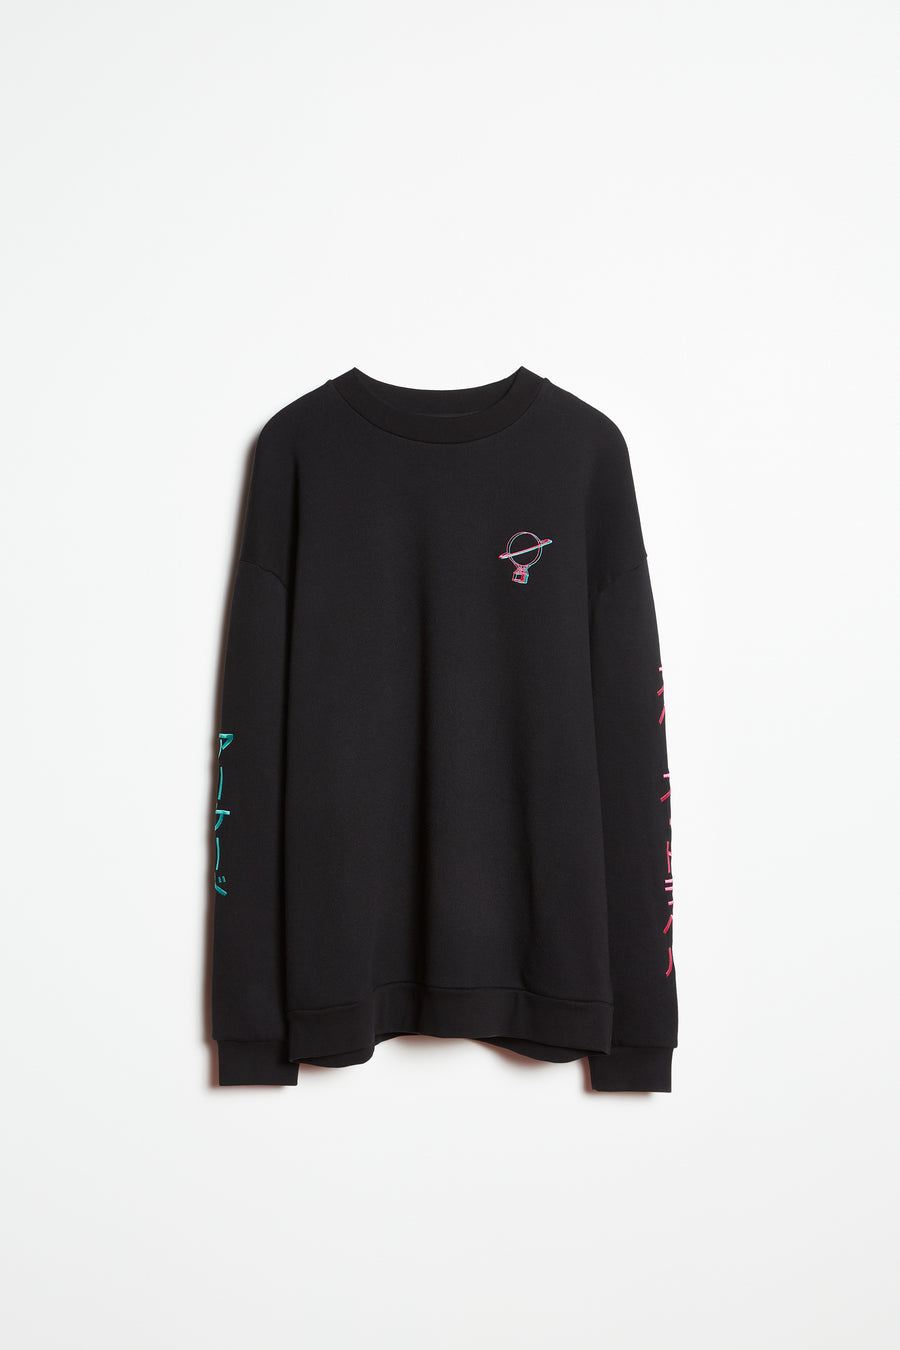 SuruDenise Space Travel Oversize Sweater